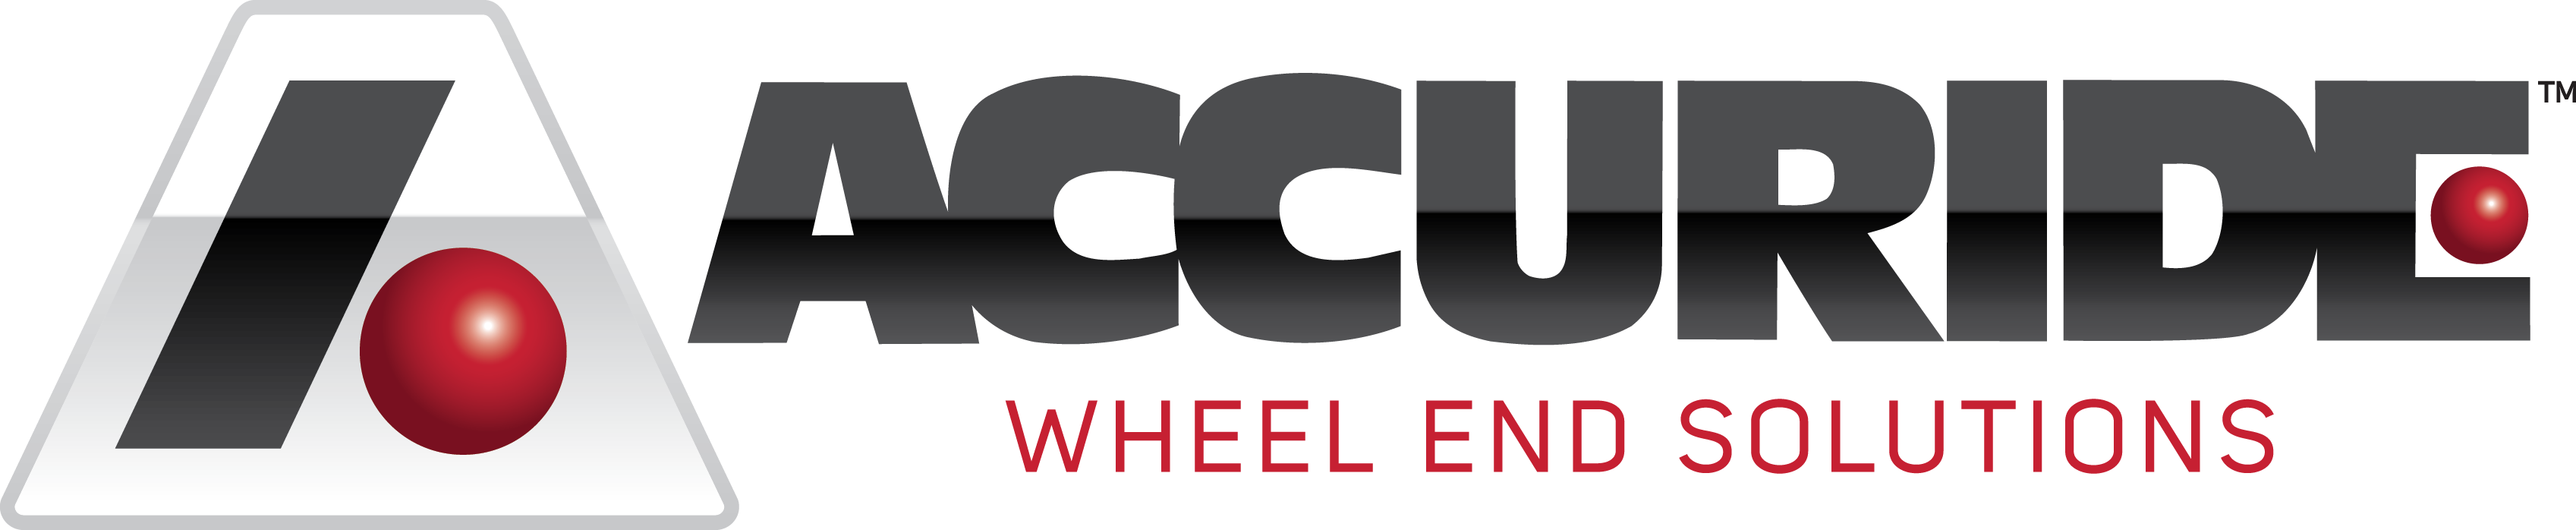 accuride-wheel-end-solutions-logo-black.png